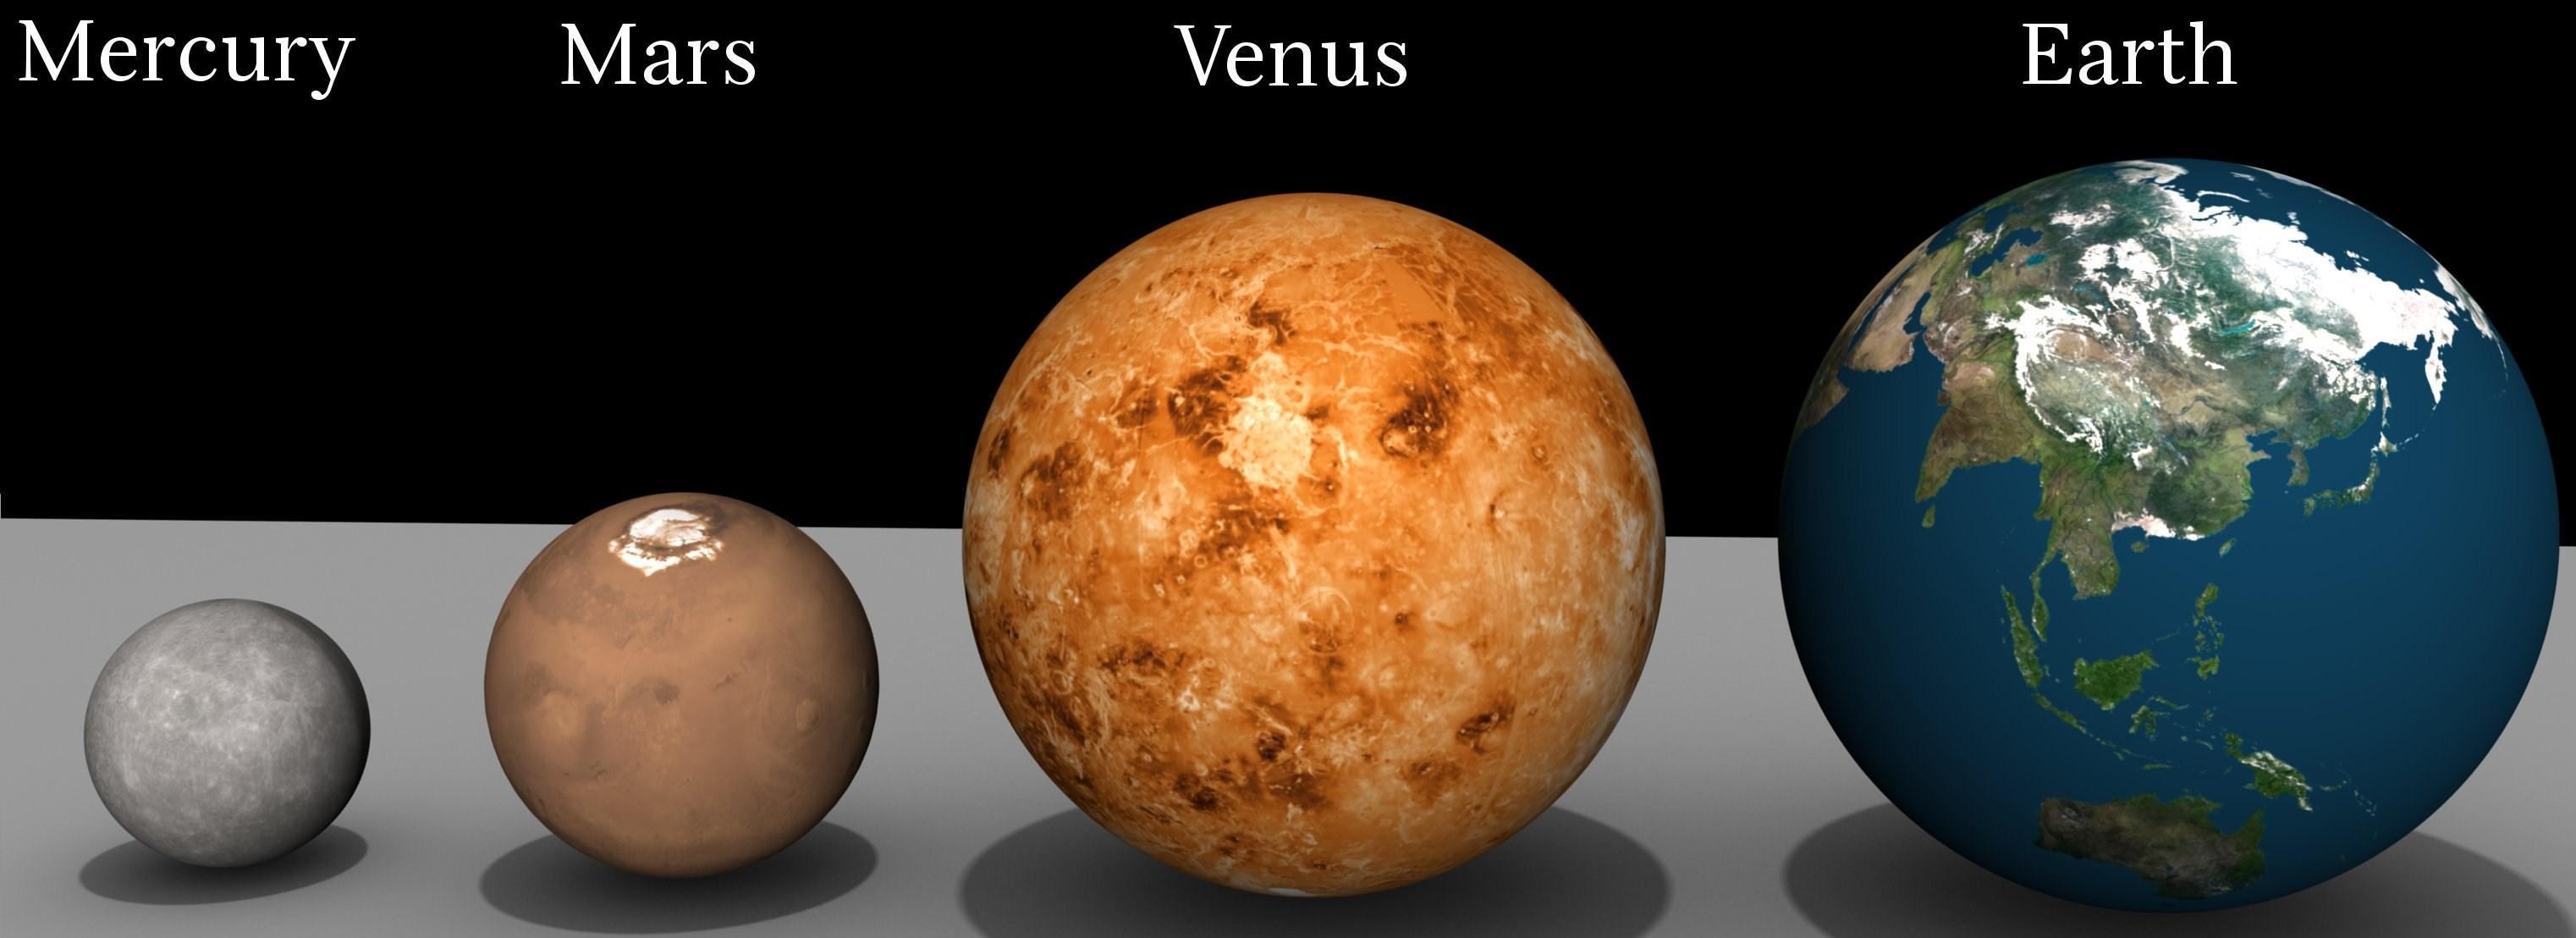 real earth comparison to other planets - photo #39